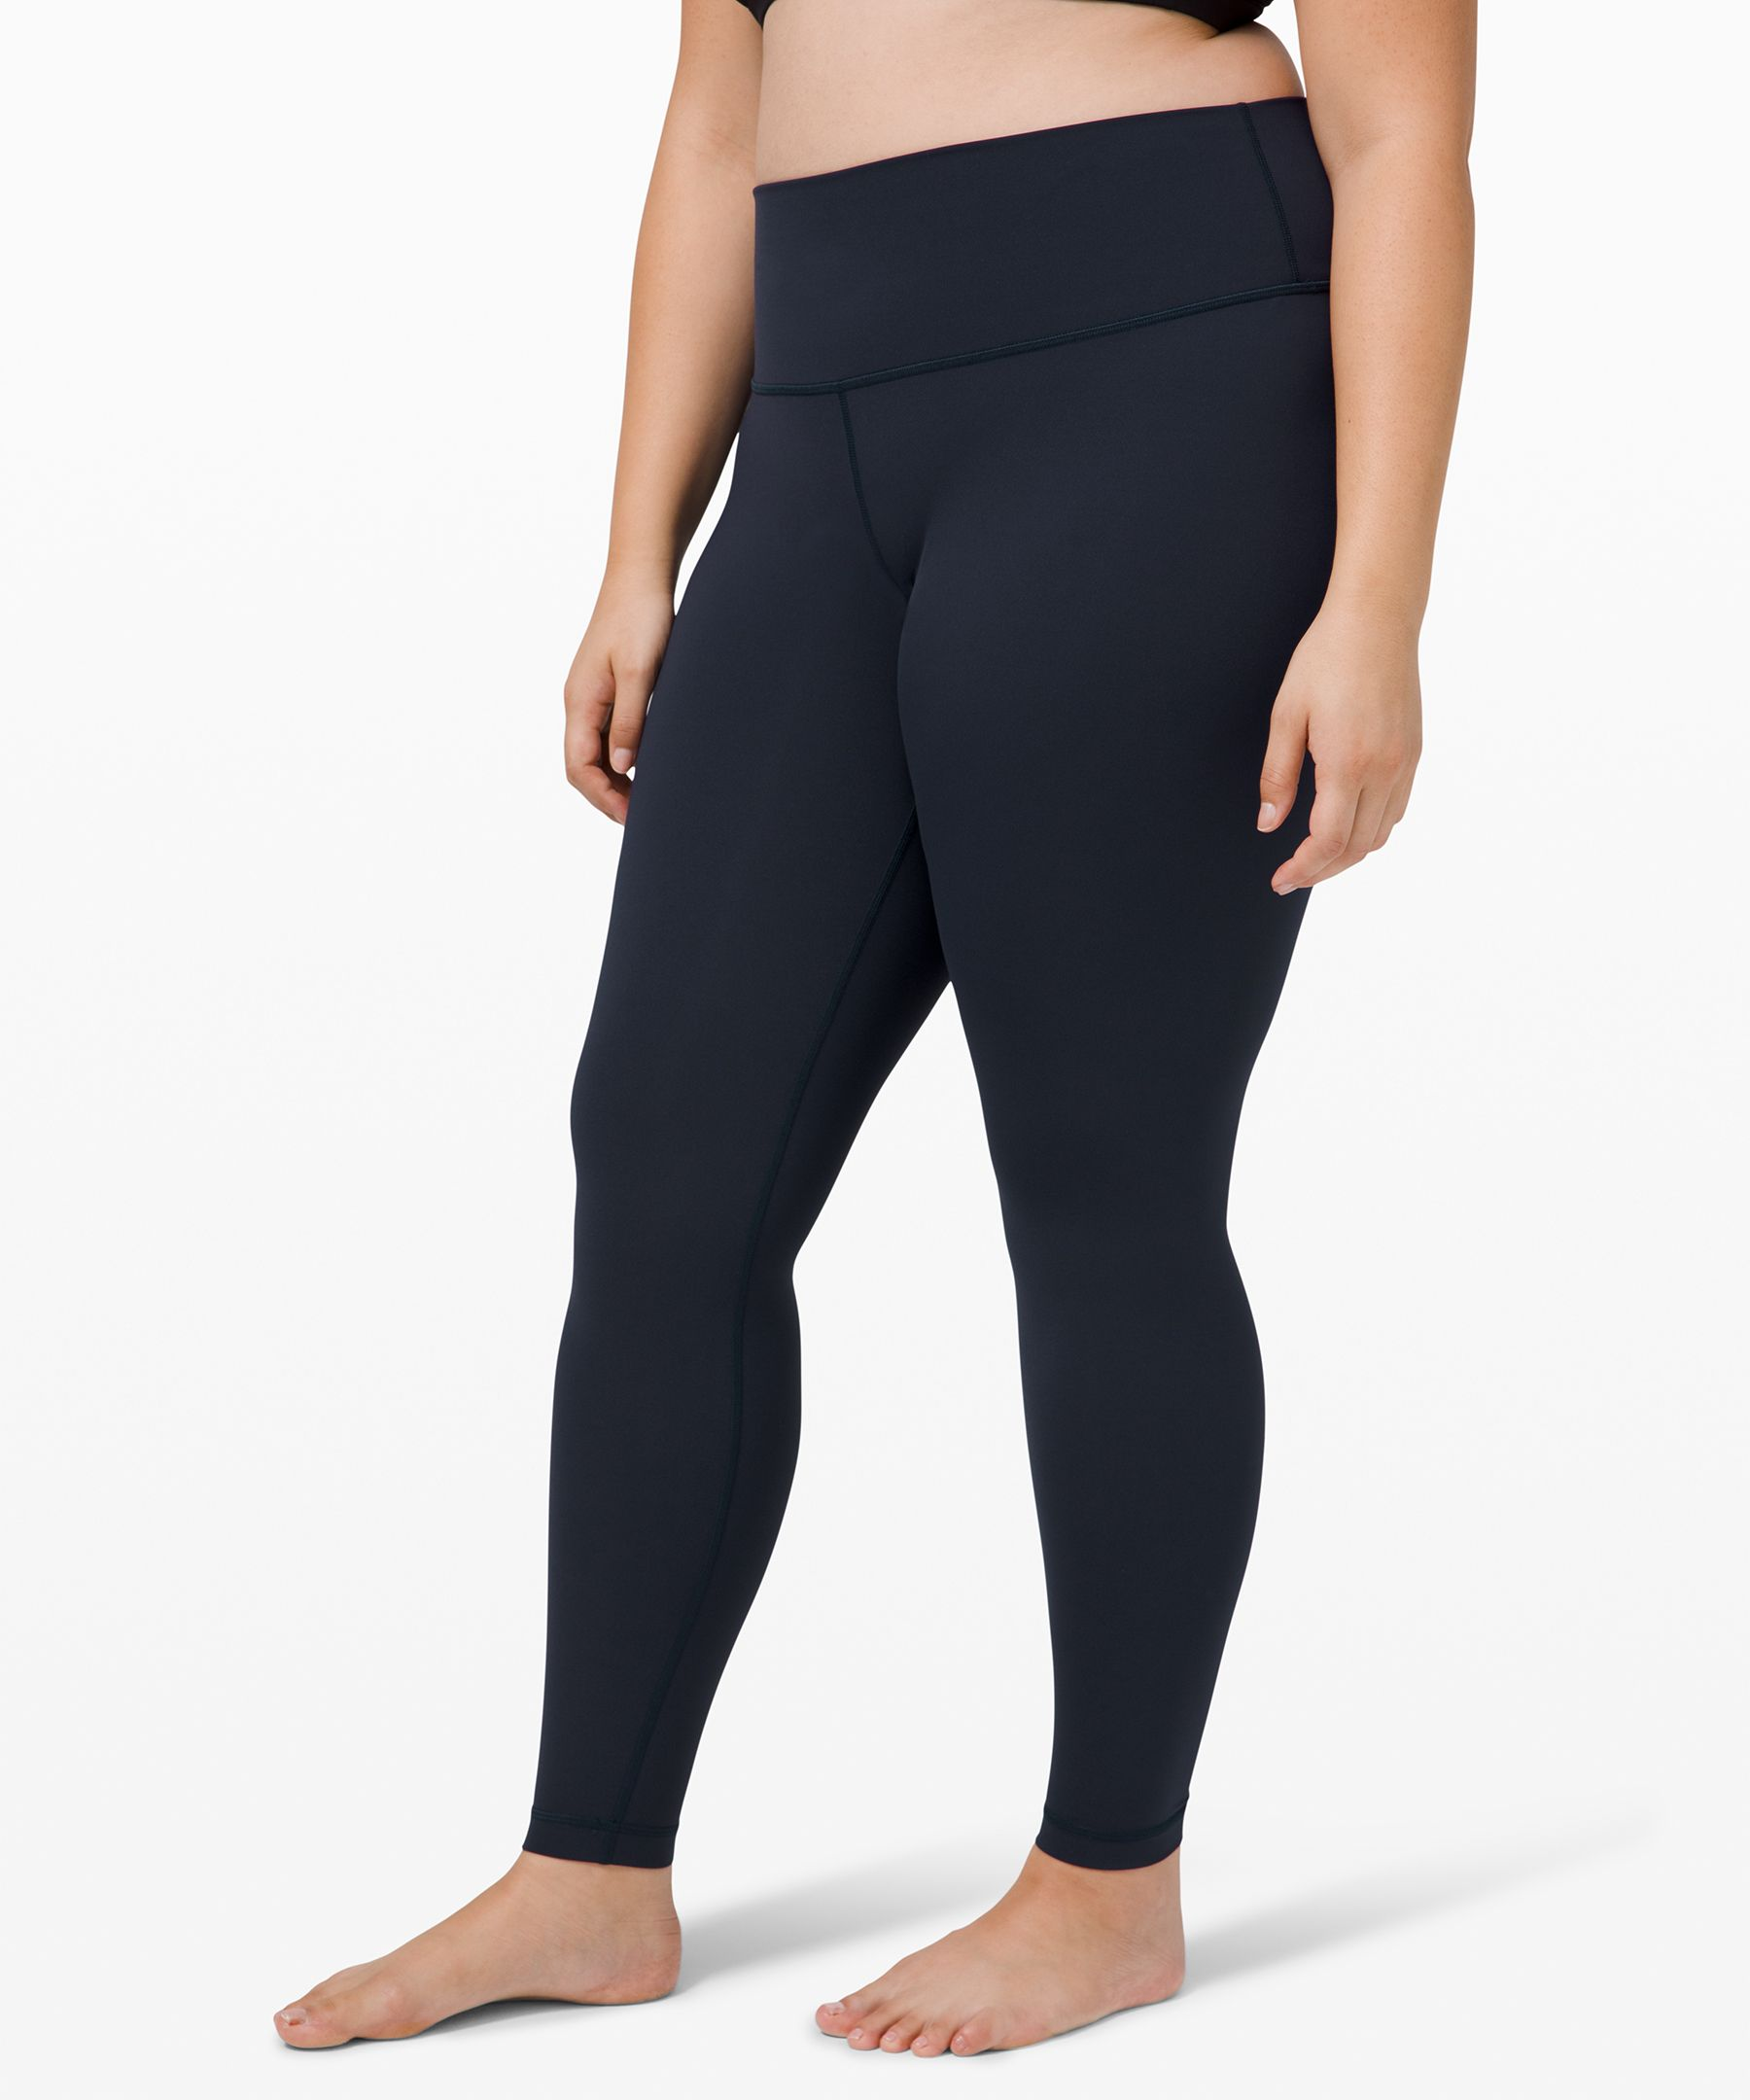 The one that started it all. Lunge, train, or flow in our versatile Wunder Under collection. Brushed Luxtreme™ fabric makes these tights a sweaty staple.